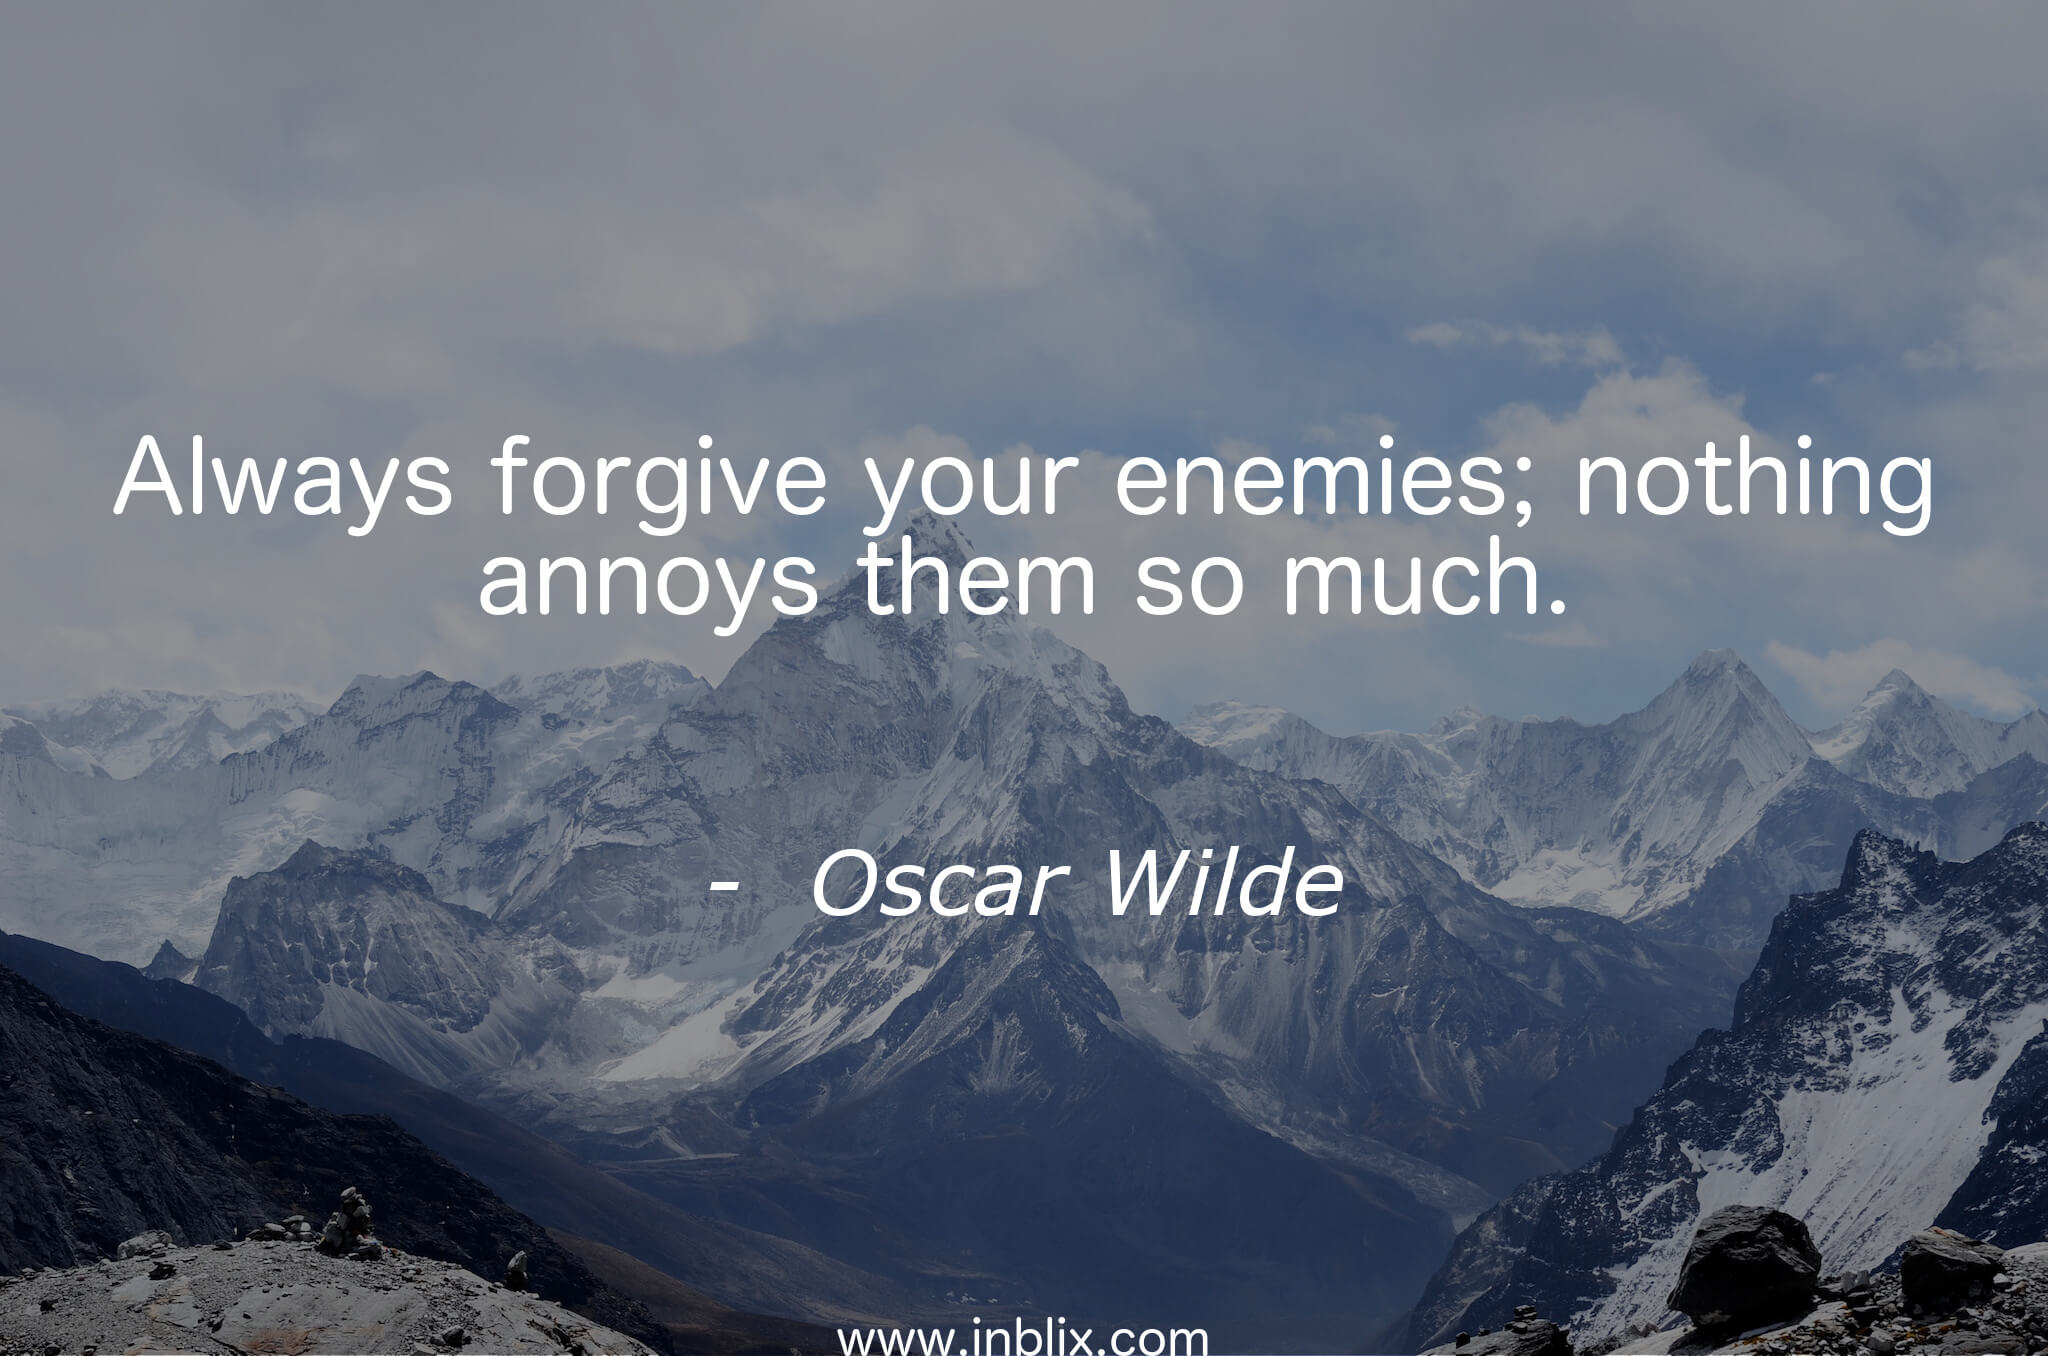 Always forgive your enemies; nothing annoys them so much.